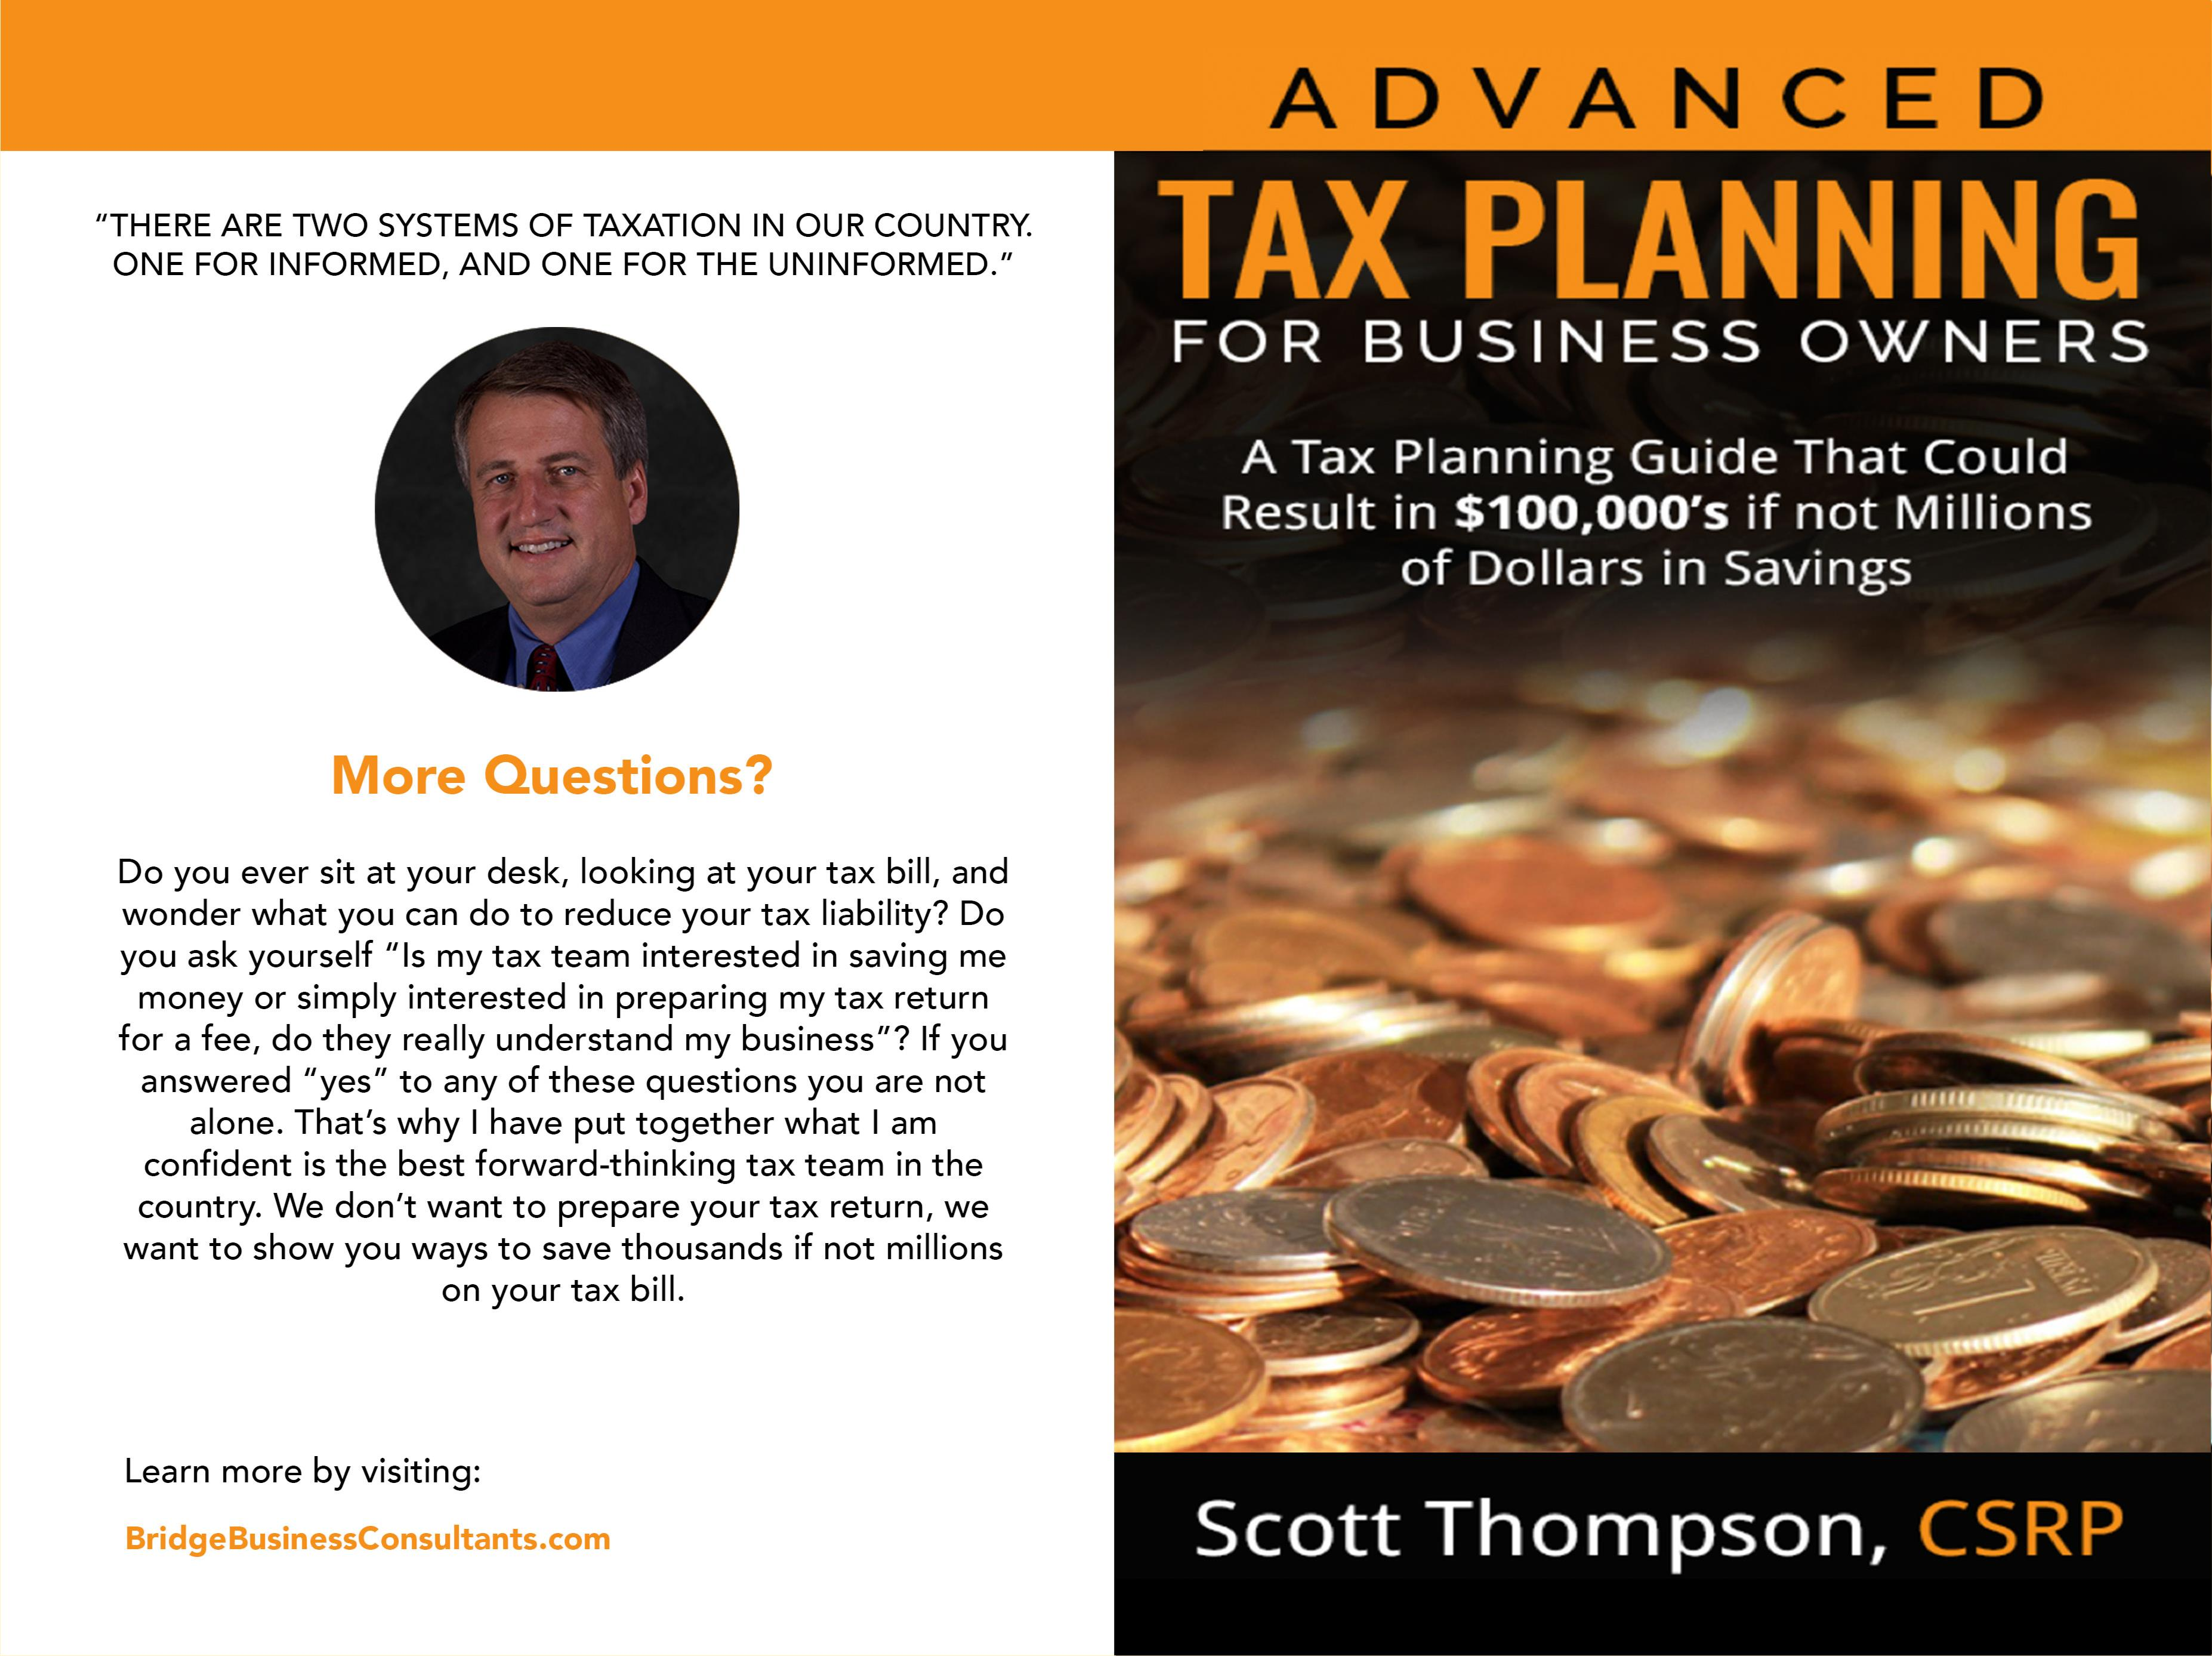 Advanced Tax Planning for Business Owners cover image